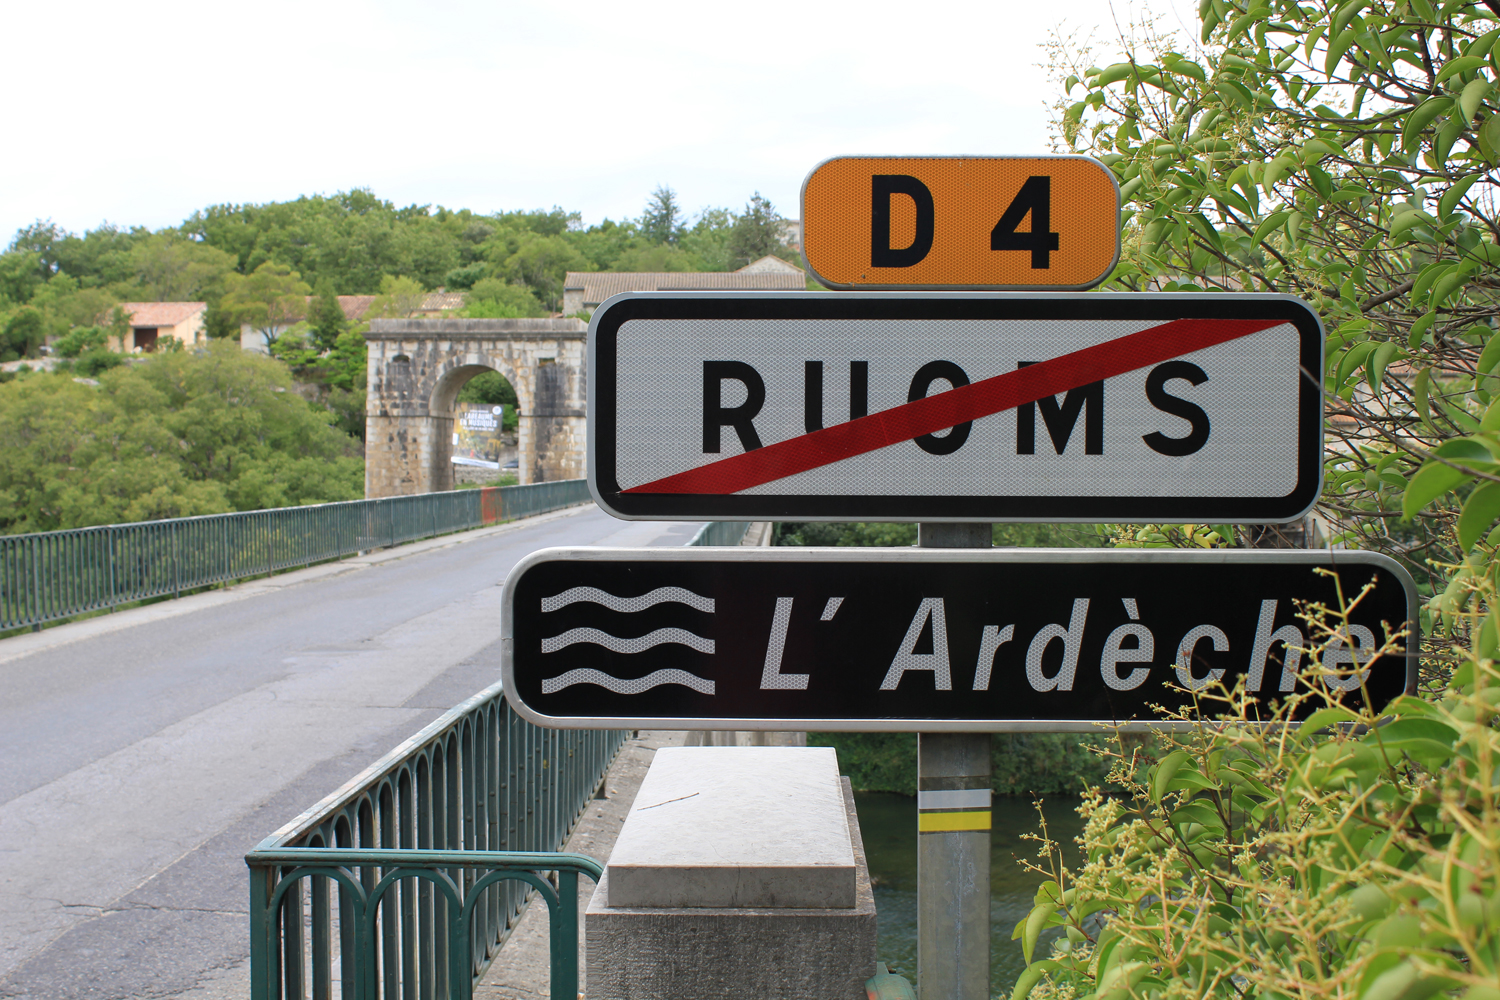 ruoms-ardeche-bridge